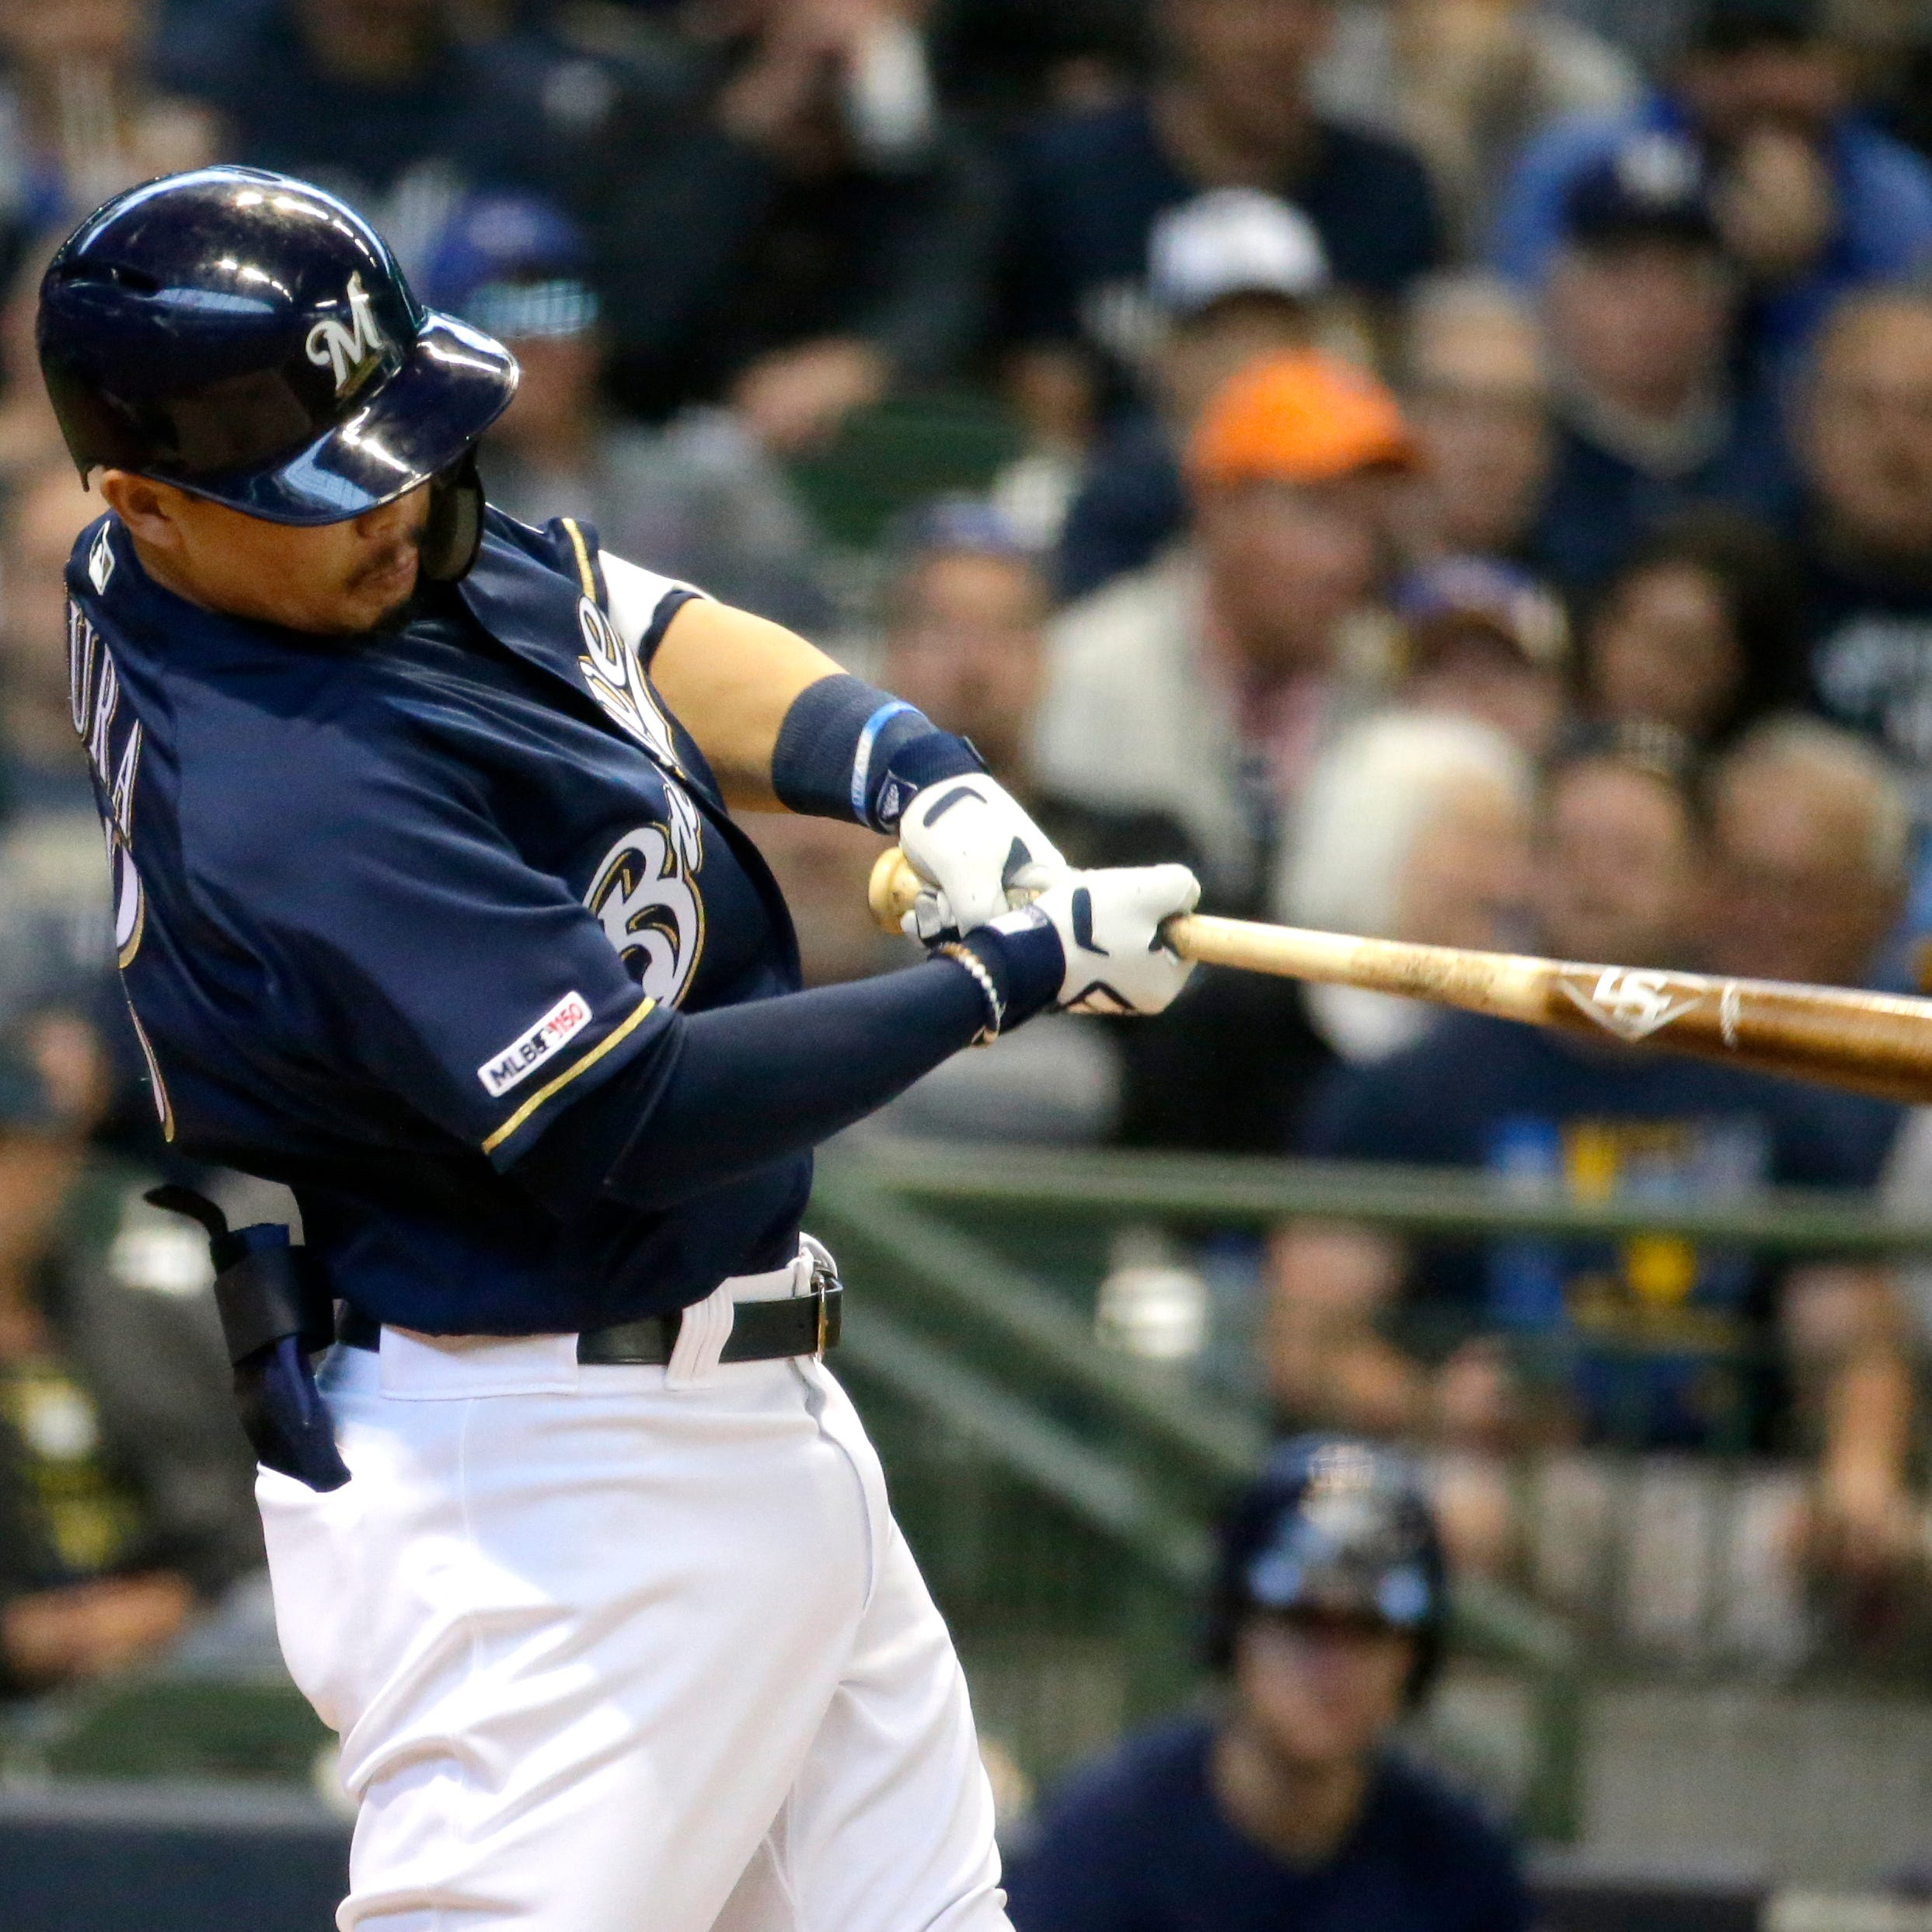 Brewers 11, Reds 9: Pitchers' duel? What pitchers duel? Hitters rule as Brewers roar back.